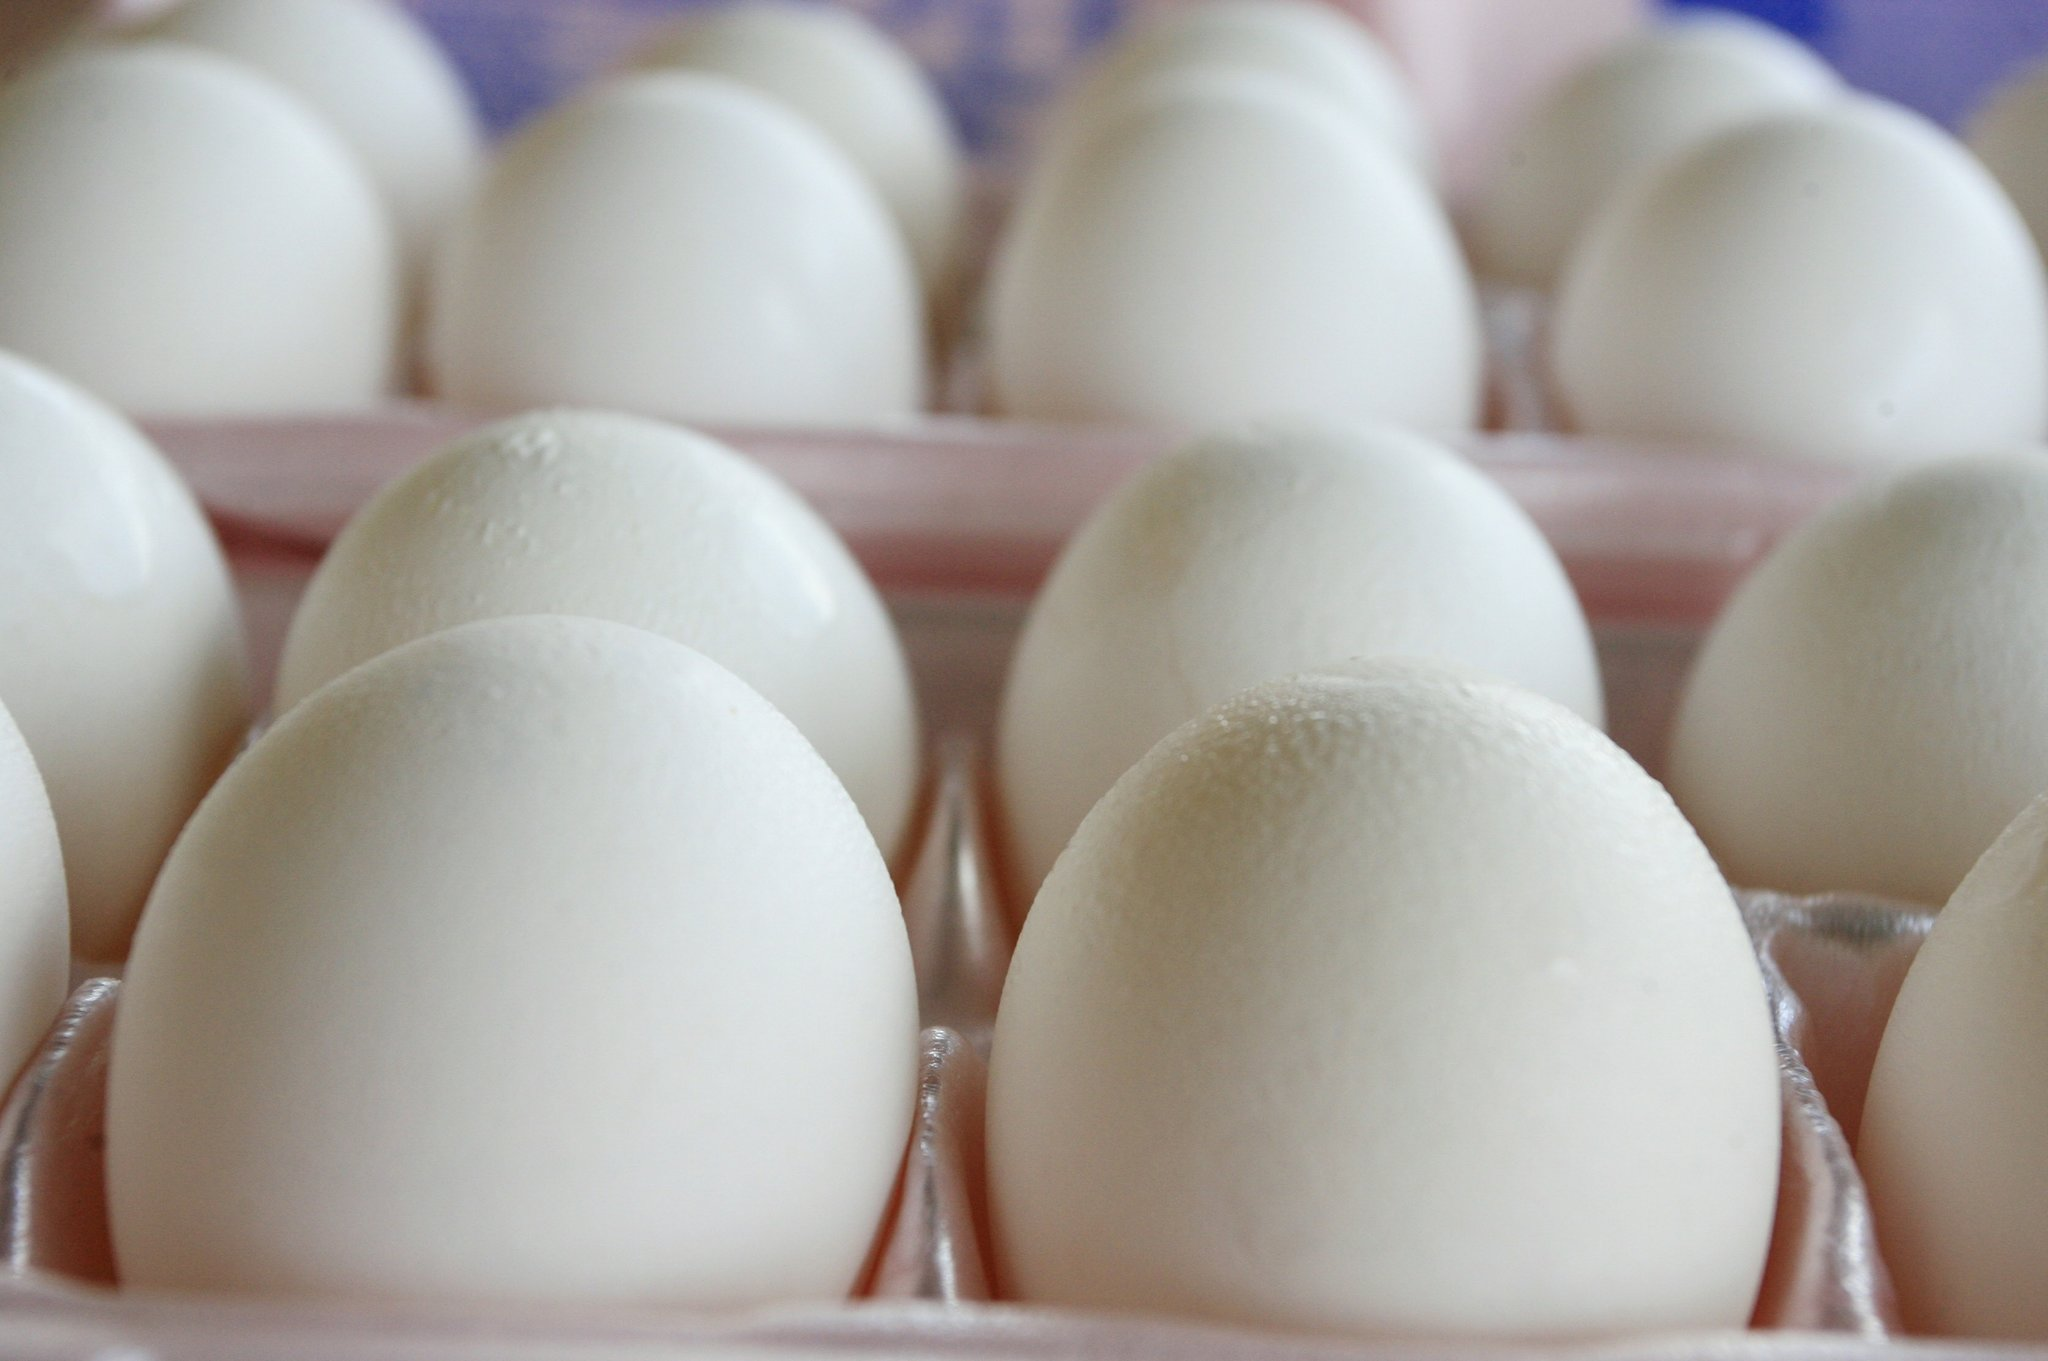 31question-booming-eggs-superJumbo.jpg